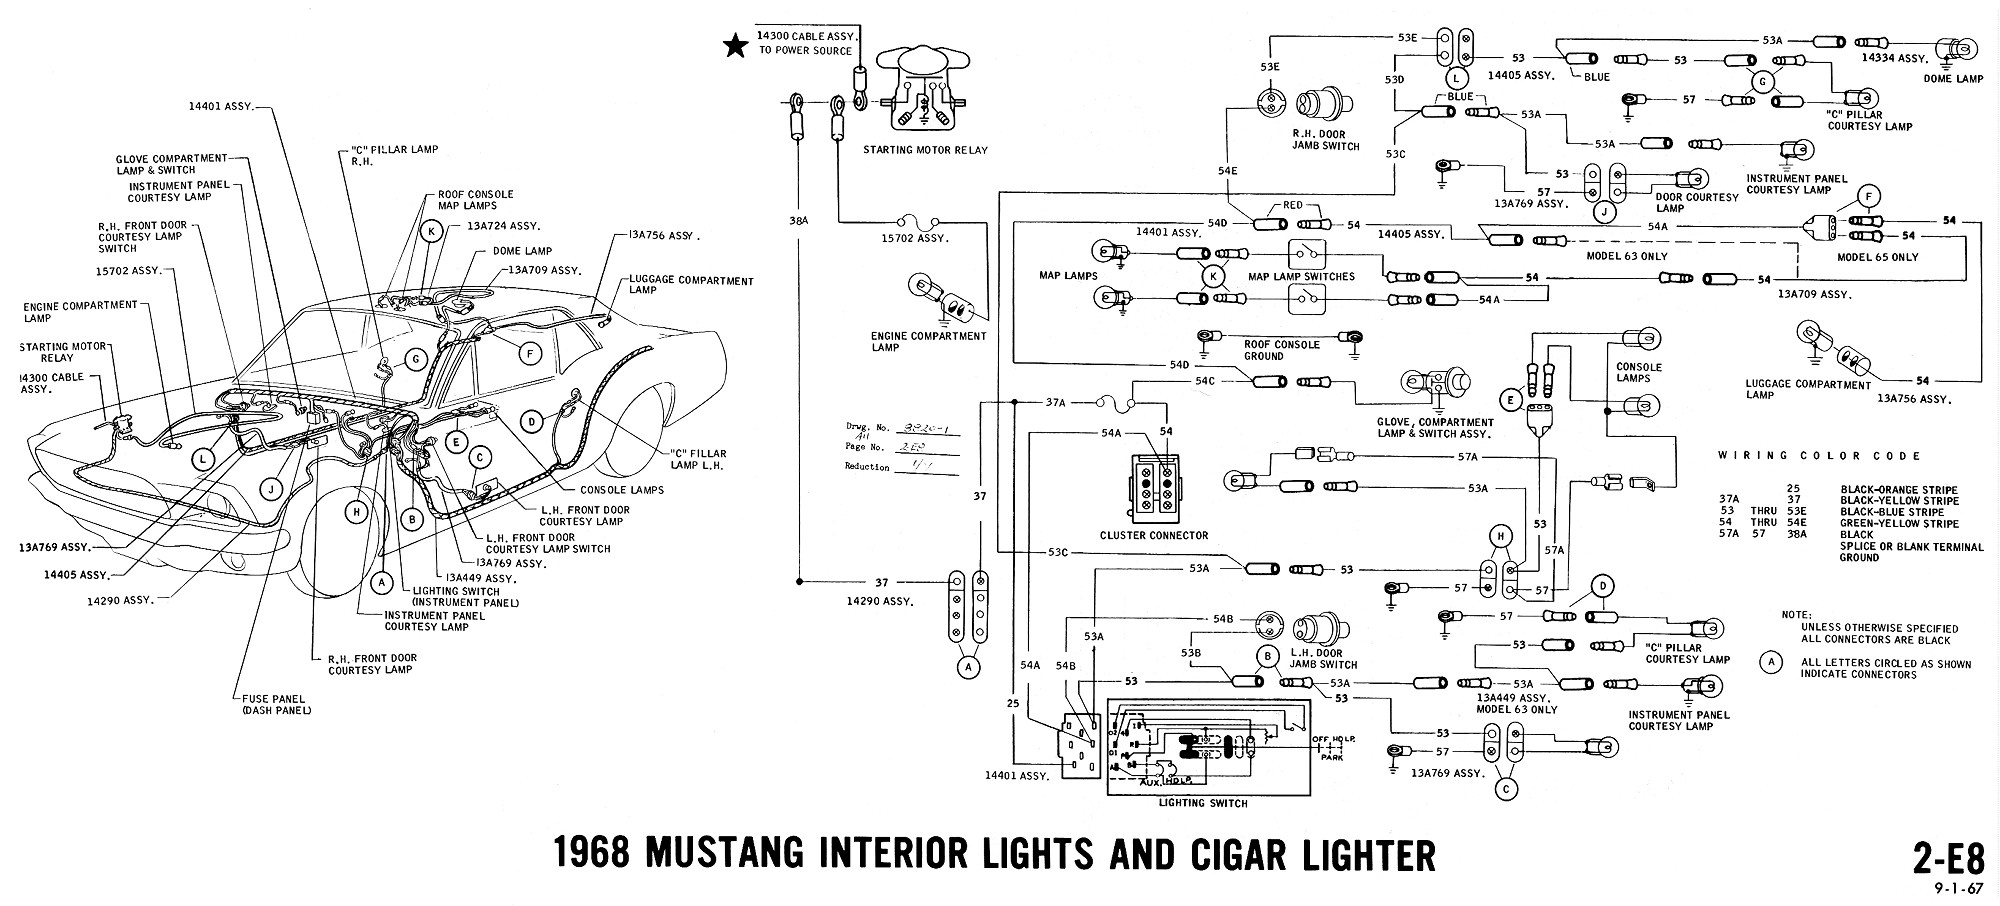 1968 mustang headlight wiring diagram wiring diagram u2022 rh tinyforge co 1968 mustang headlight switch wiring diagram